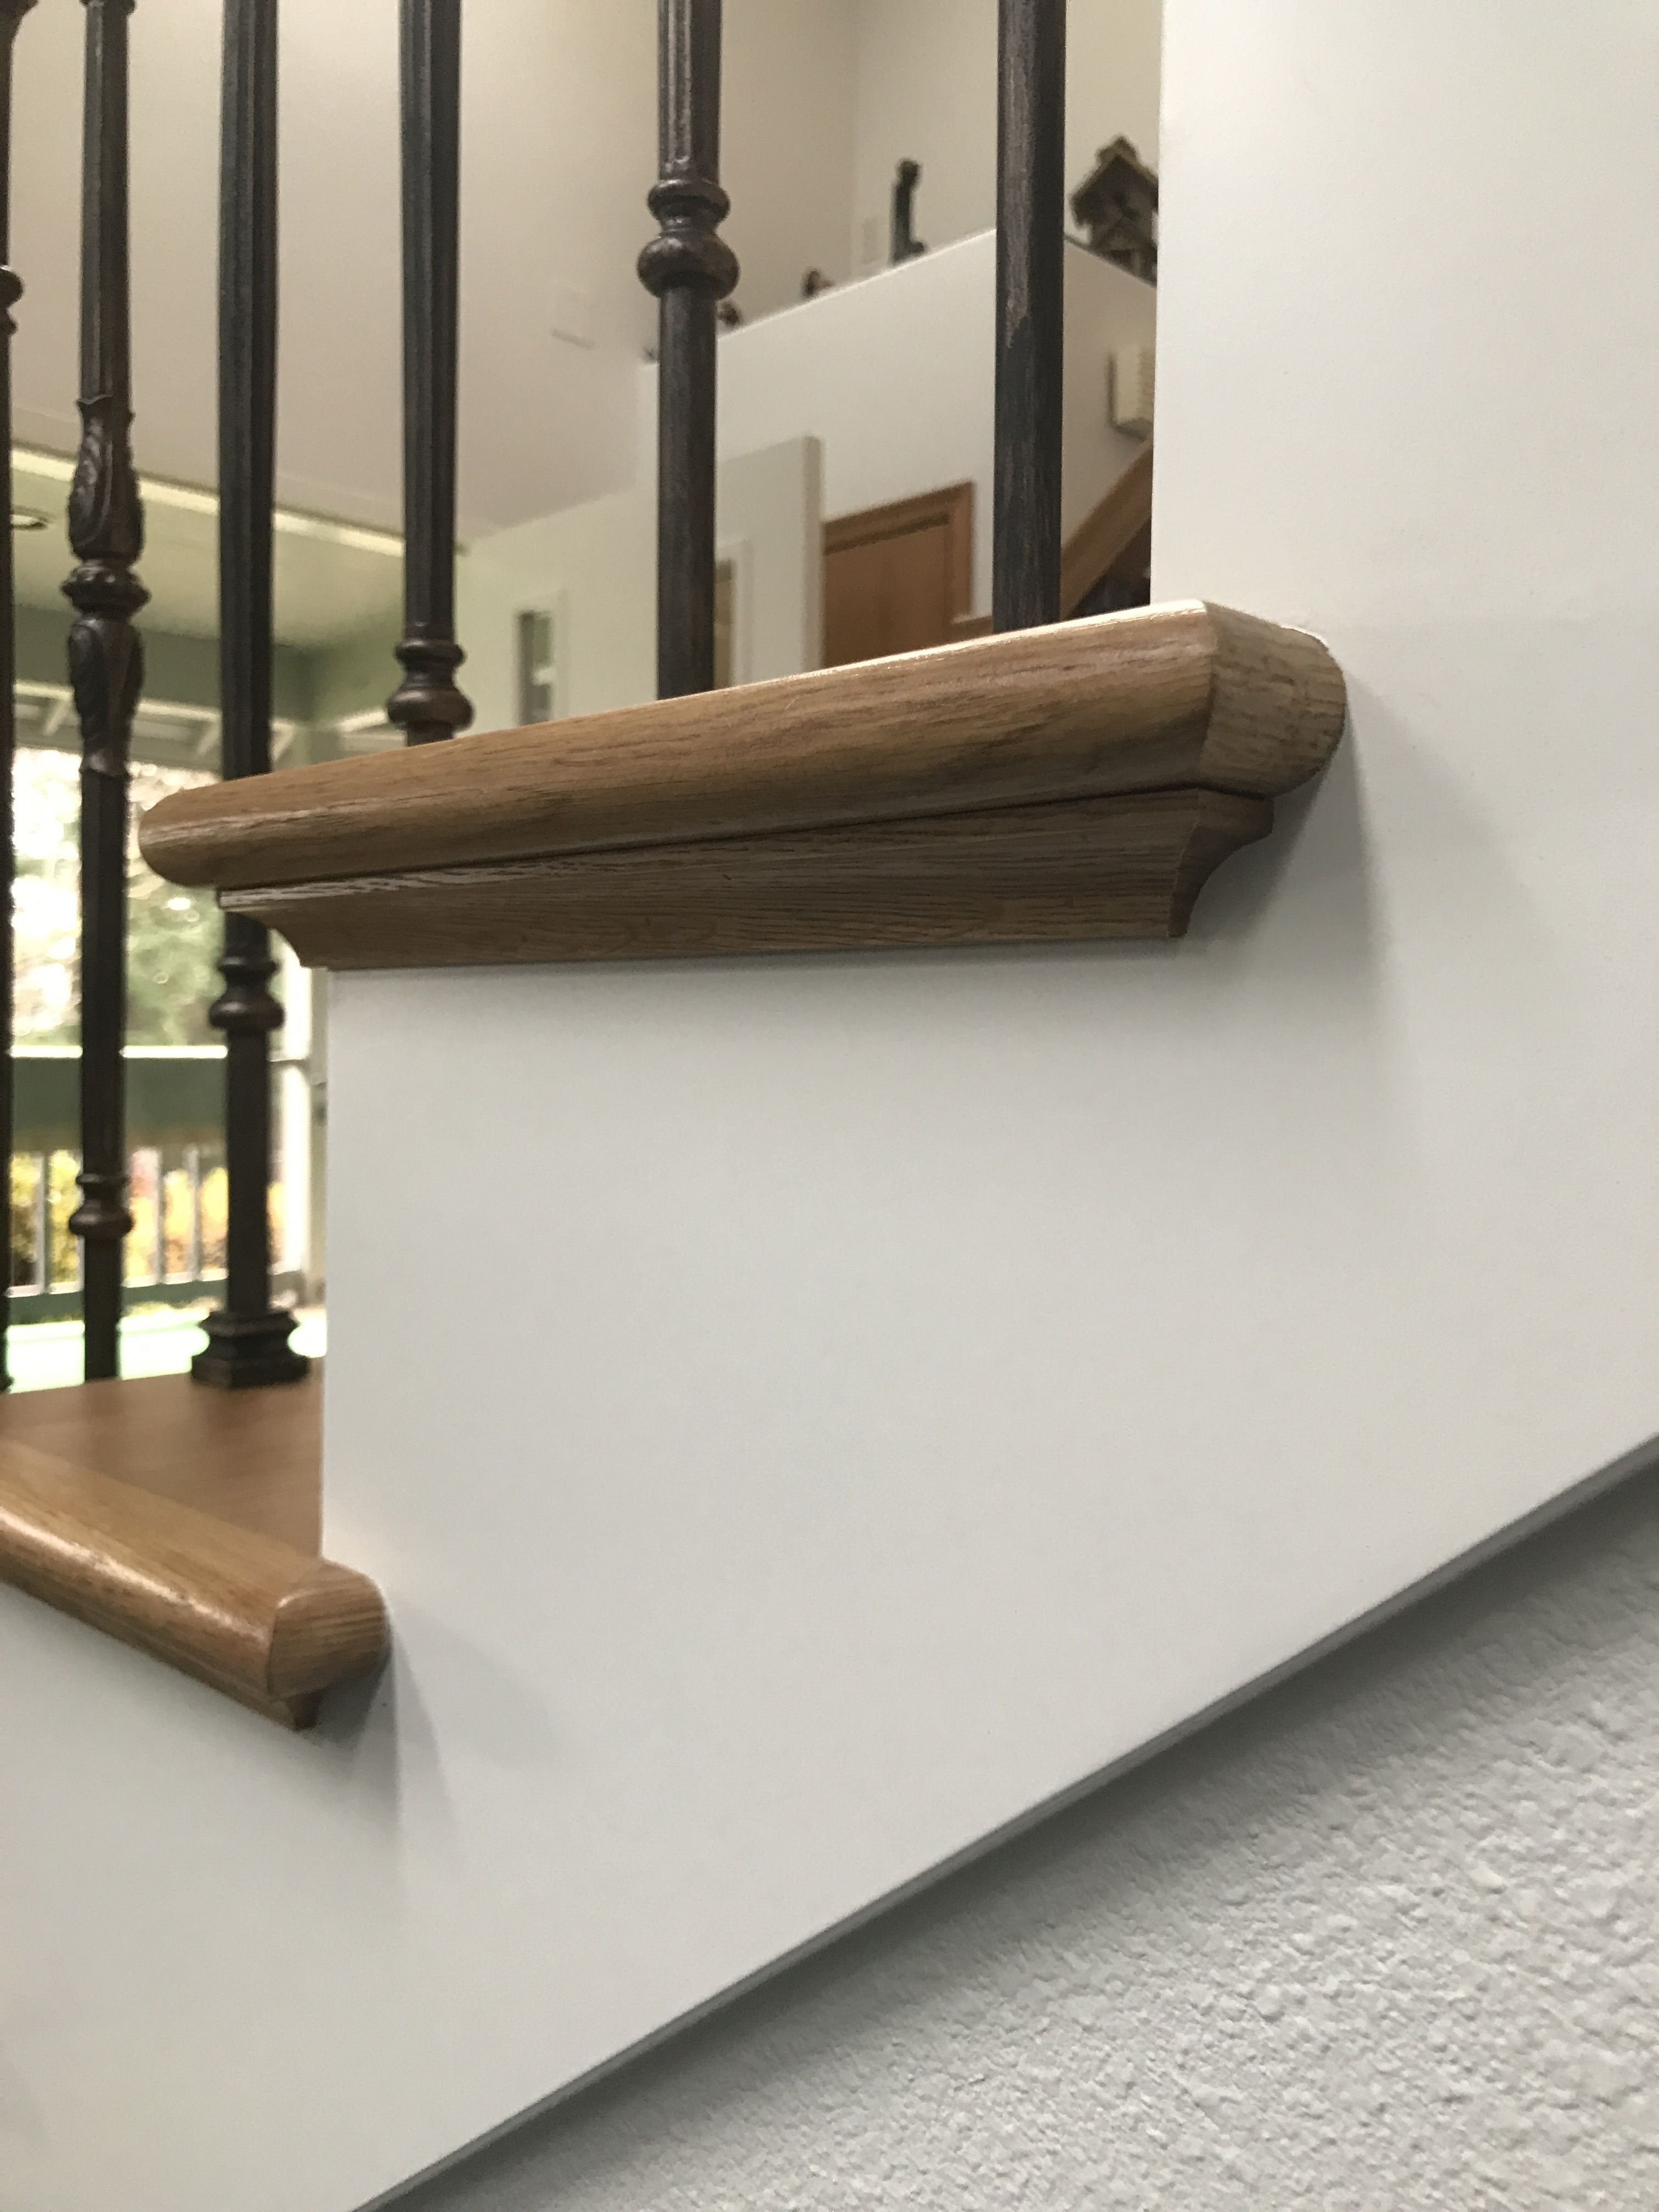 This Is A Traditional Stair Tread Return With Cove Molding View The Detailed Cove And Nosing Returns Into The Skirt Boards P In 2020 Stair Treads Stairs Outdoor Decor